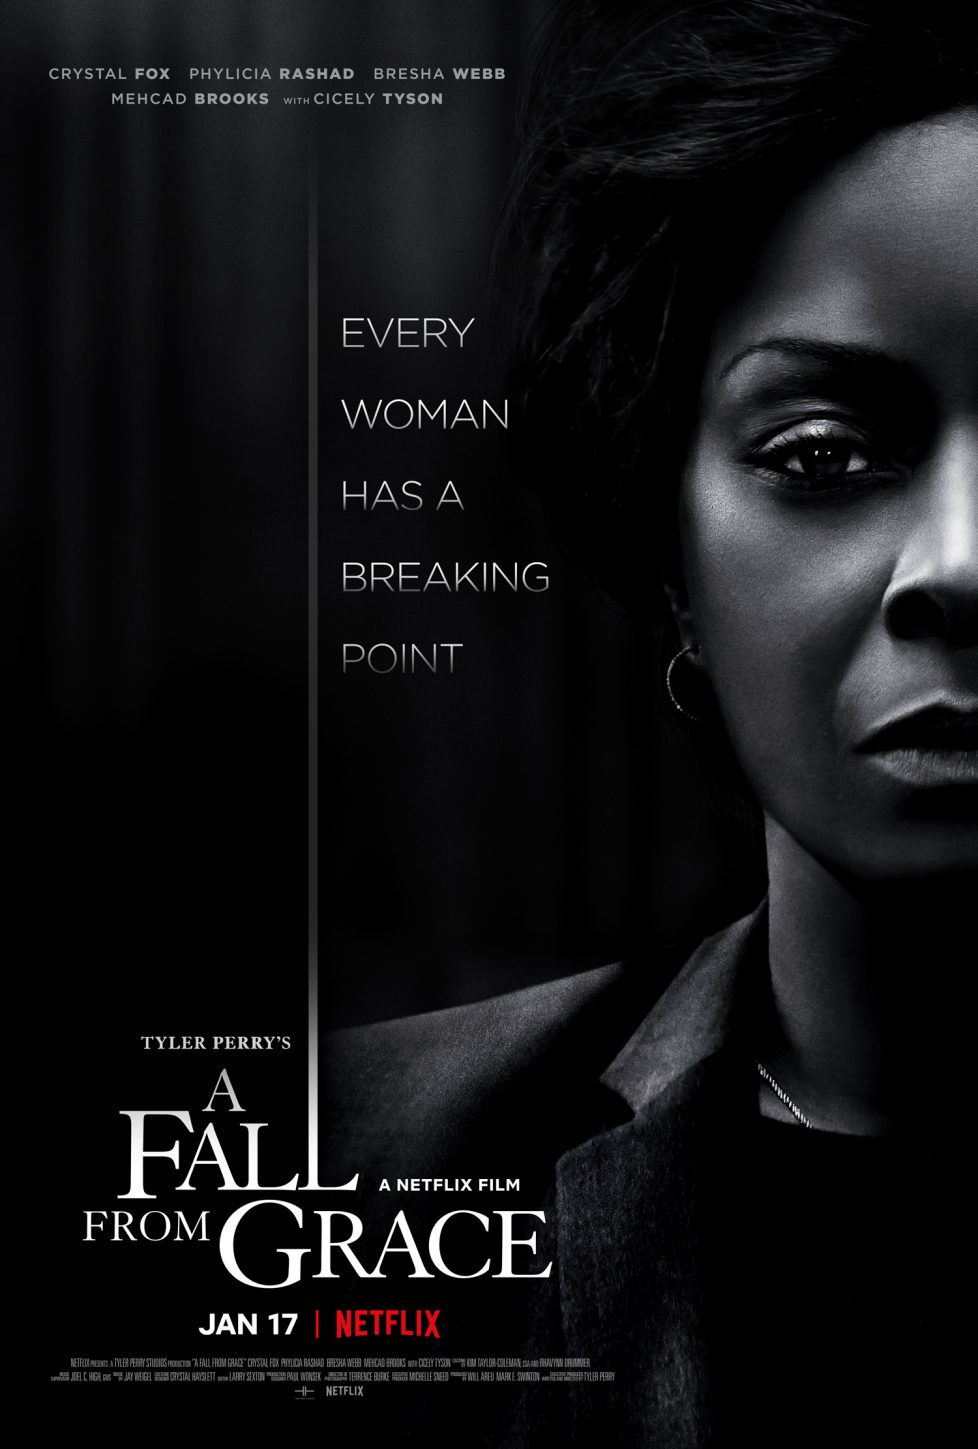 a fall from grace movie poster